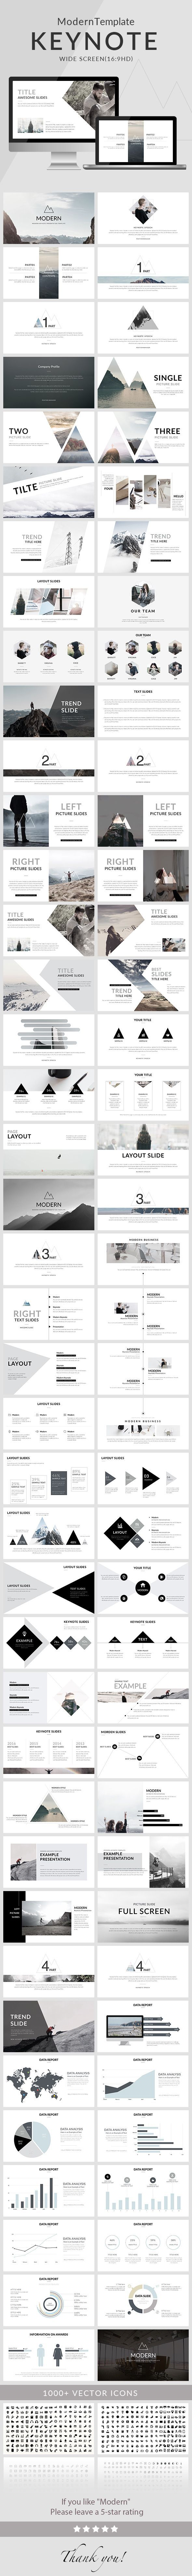 Modern - Clean trend Keynote Template. Download here: http://graphicriver.net/item/modern-clean-trend-keynote-template/16511617?ref=ksioks